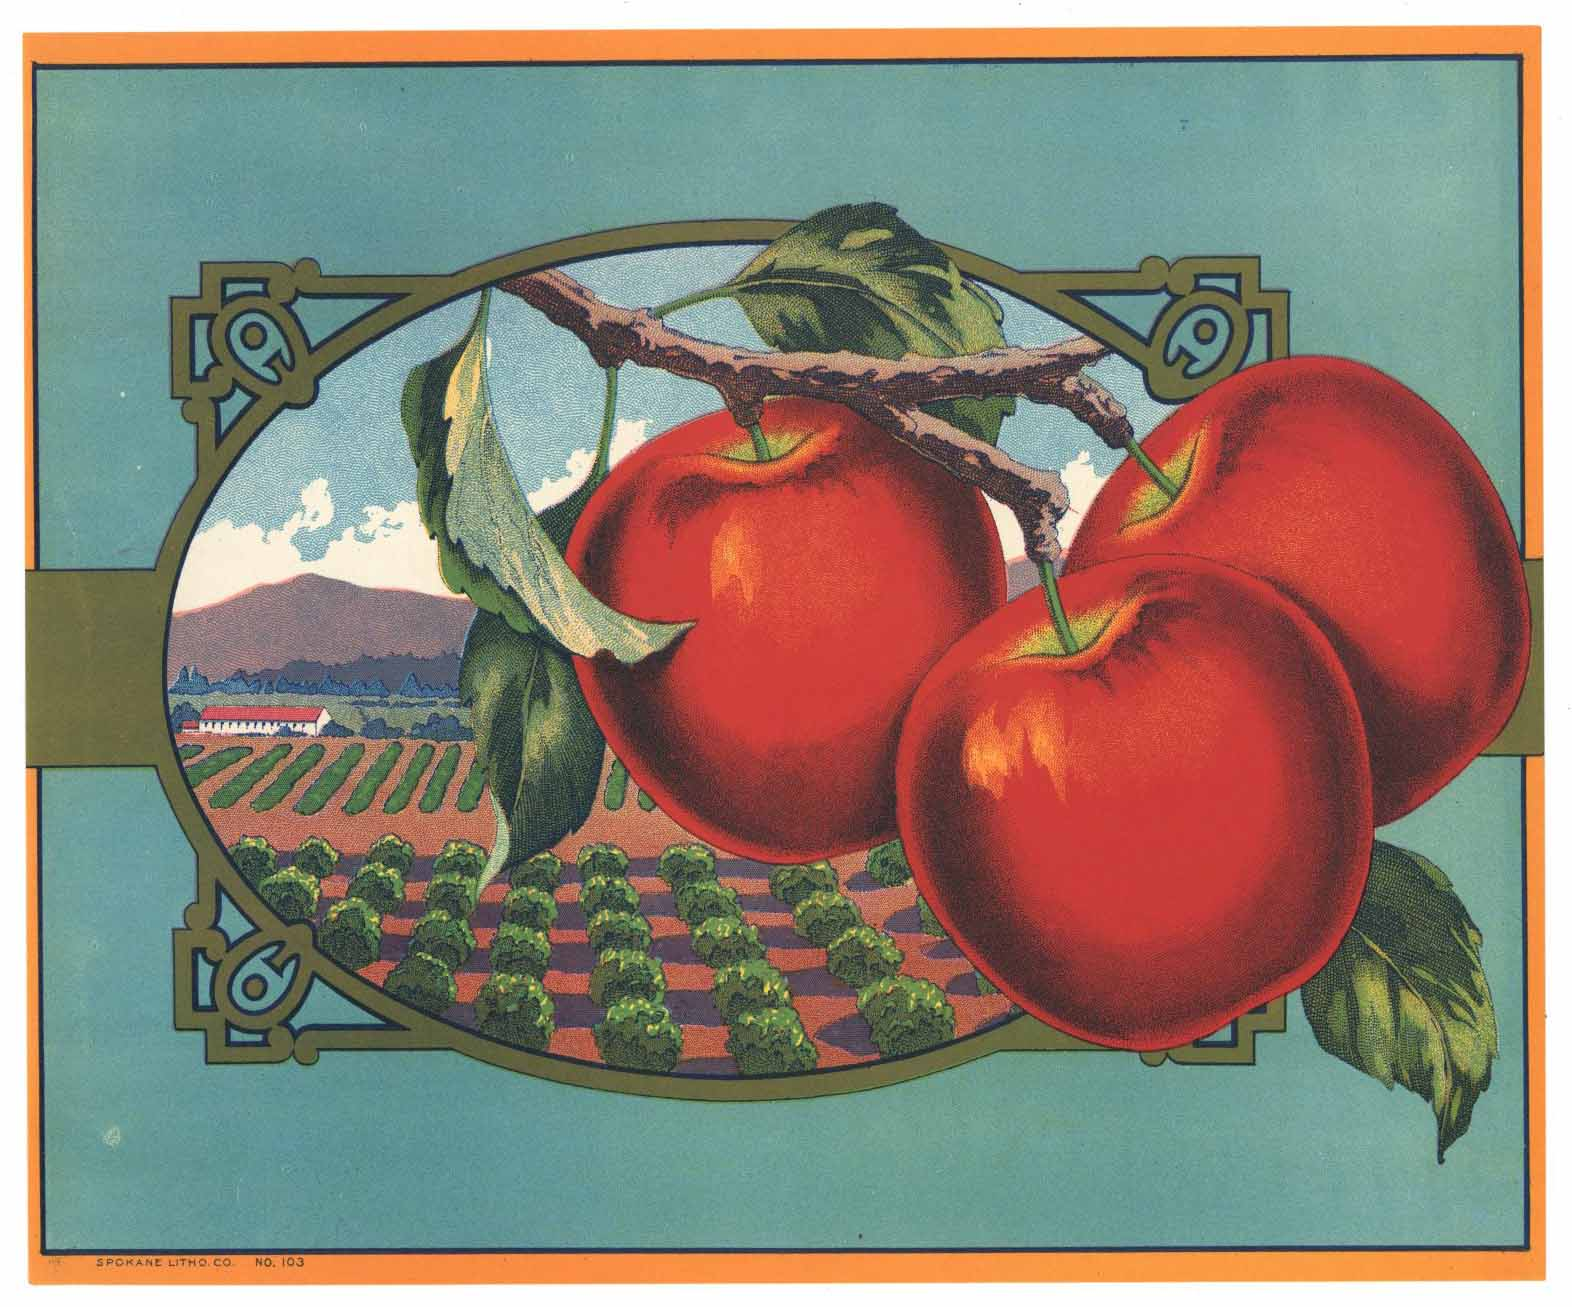 Stock No. 103 Vintage Apple Crate Label